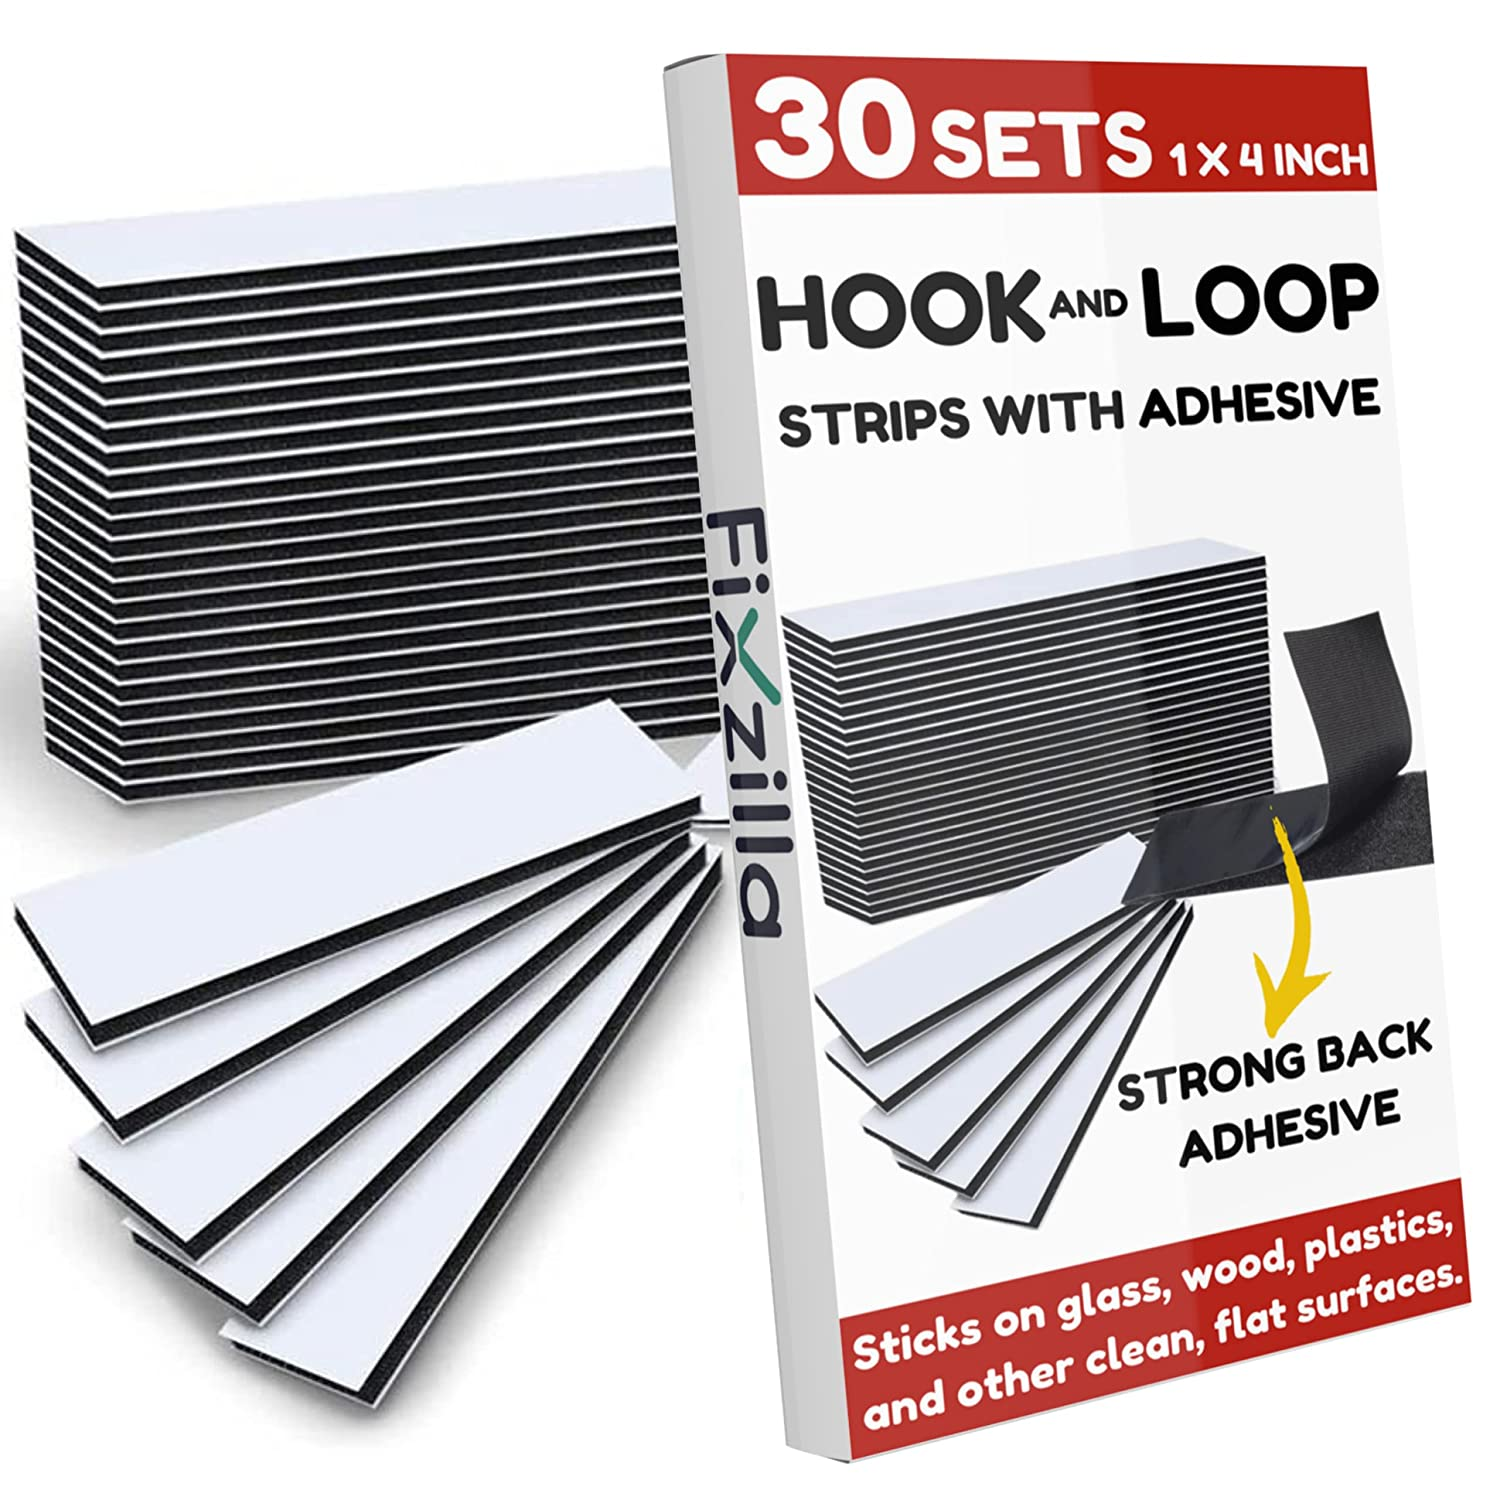 FixZilla - 30 Sets 1x4 Inch Adhesive Baltimore Mall and Max 67% OFF Hook with Loop Strips